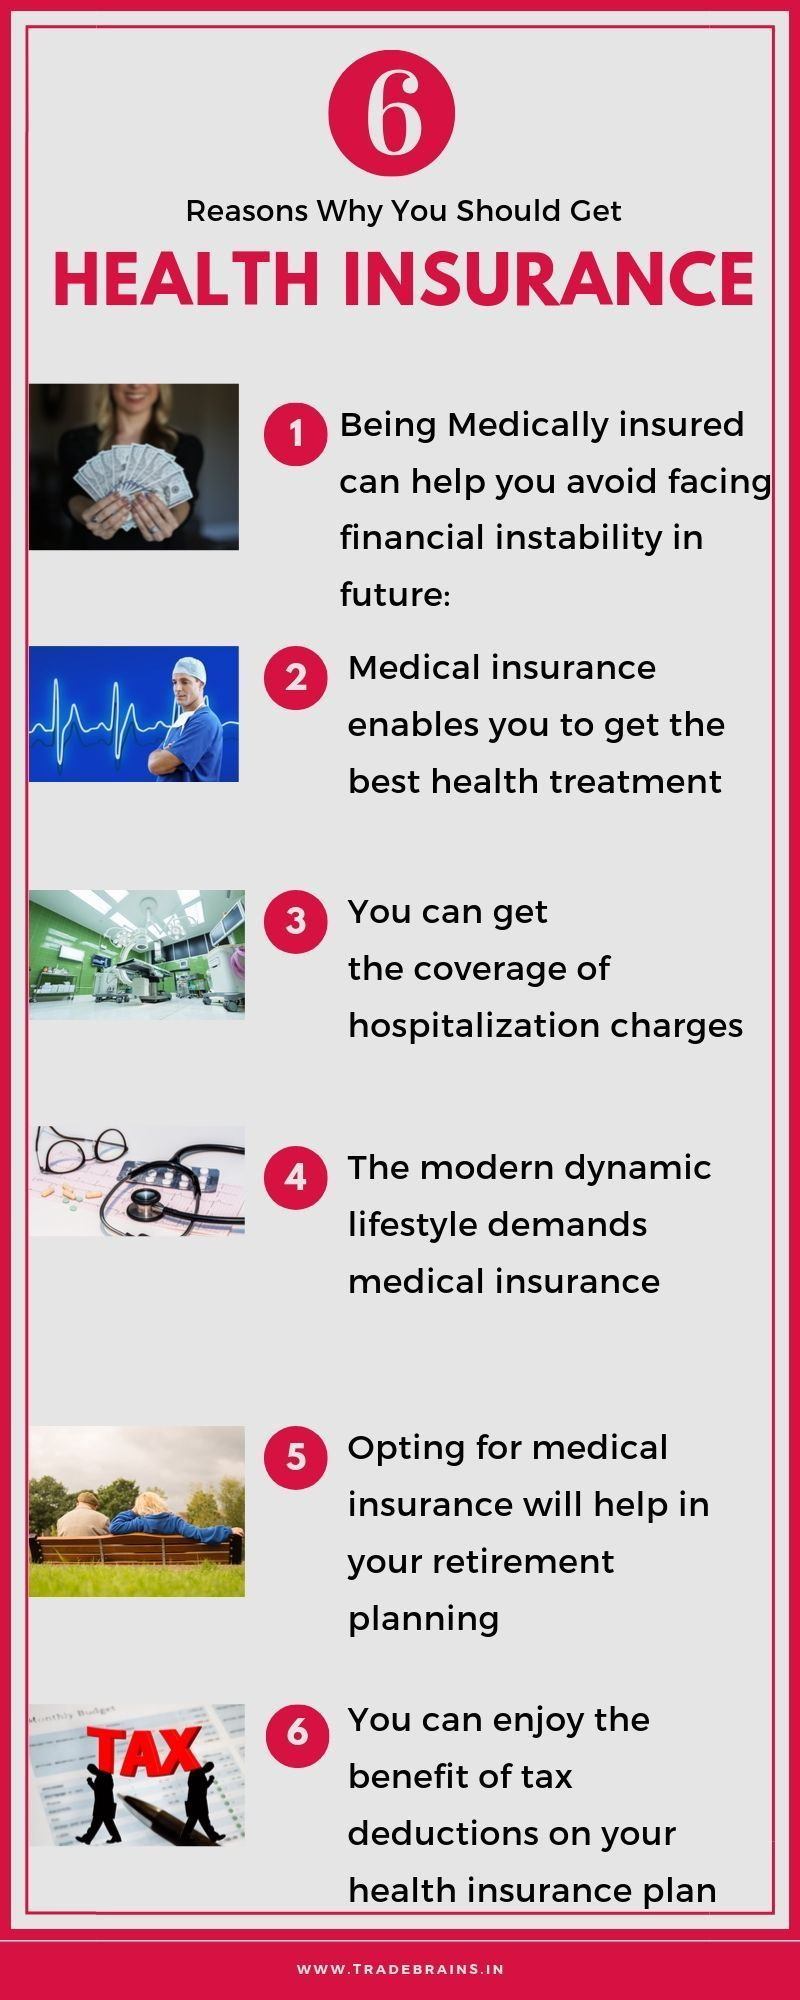 6 Reasons Why You Should Get Health Insurance Buy Health Insurance Health Insurance Quote Health Insurance Humor